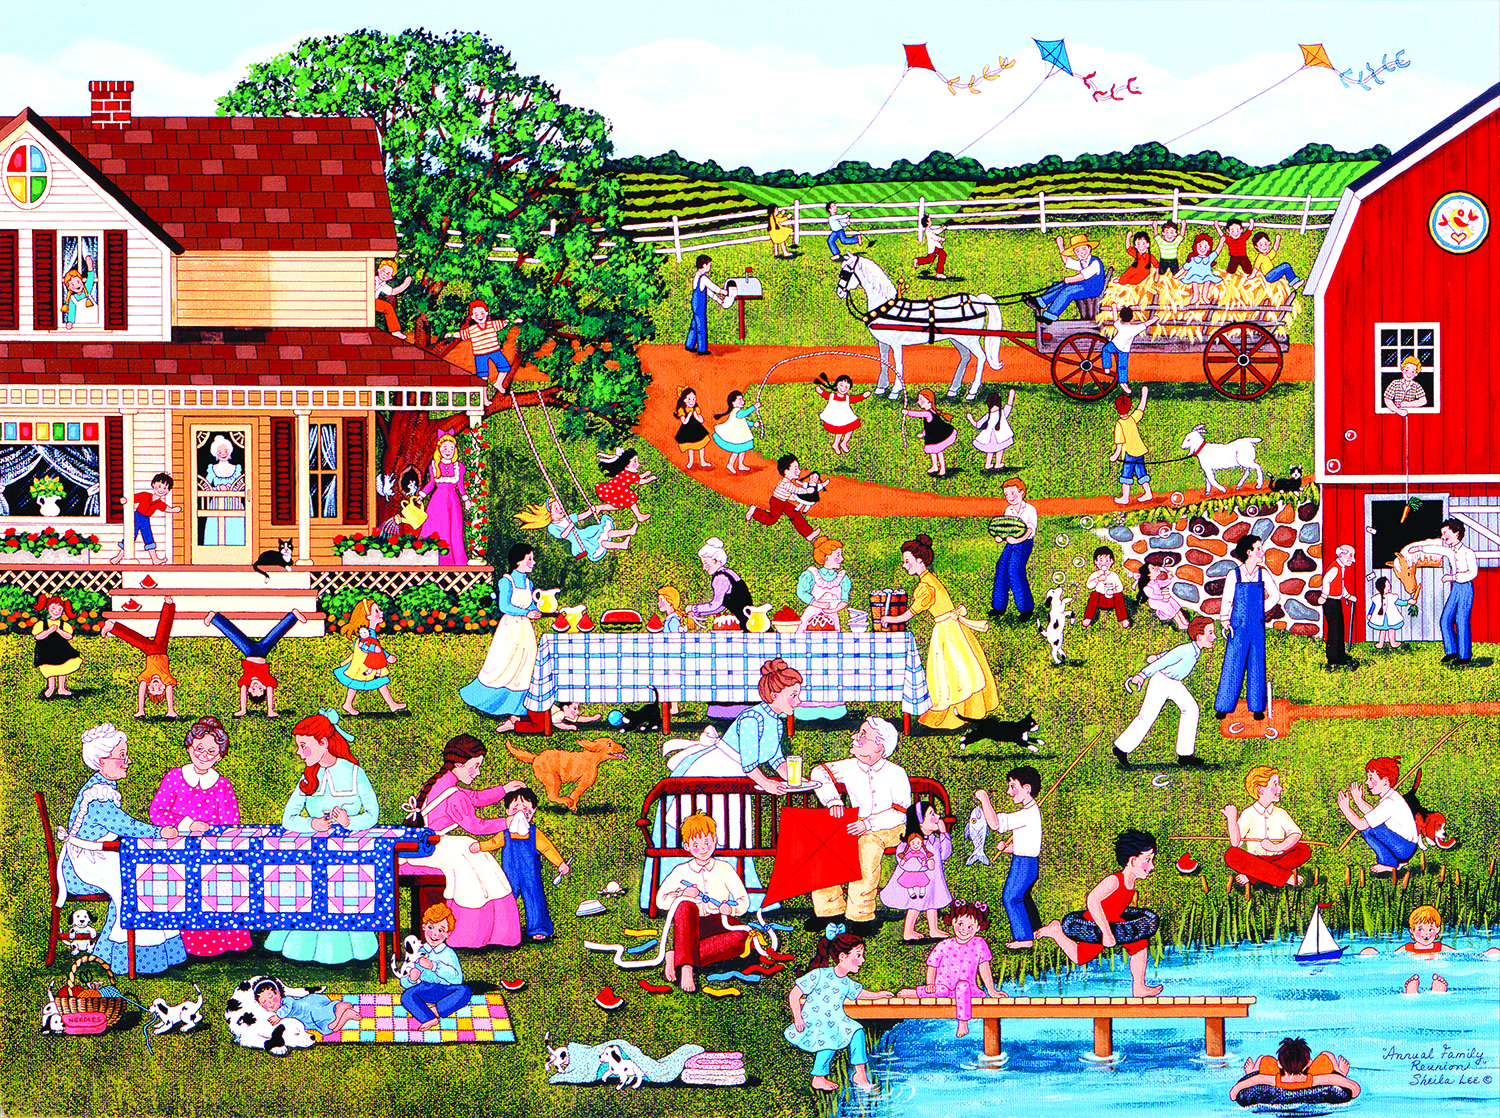 Annual Family Reunion 1000 Pc Jigsaw Puzzle by SunsOut Inc.